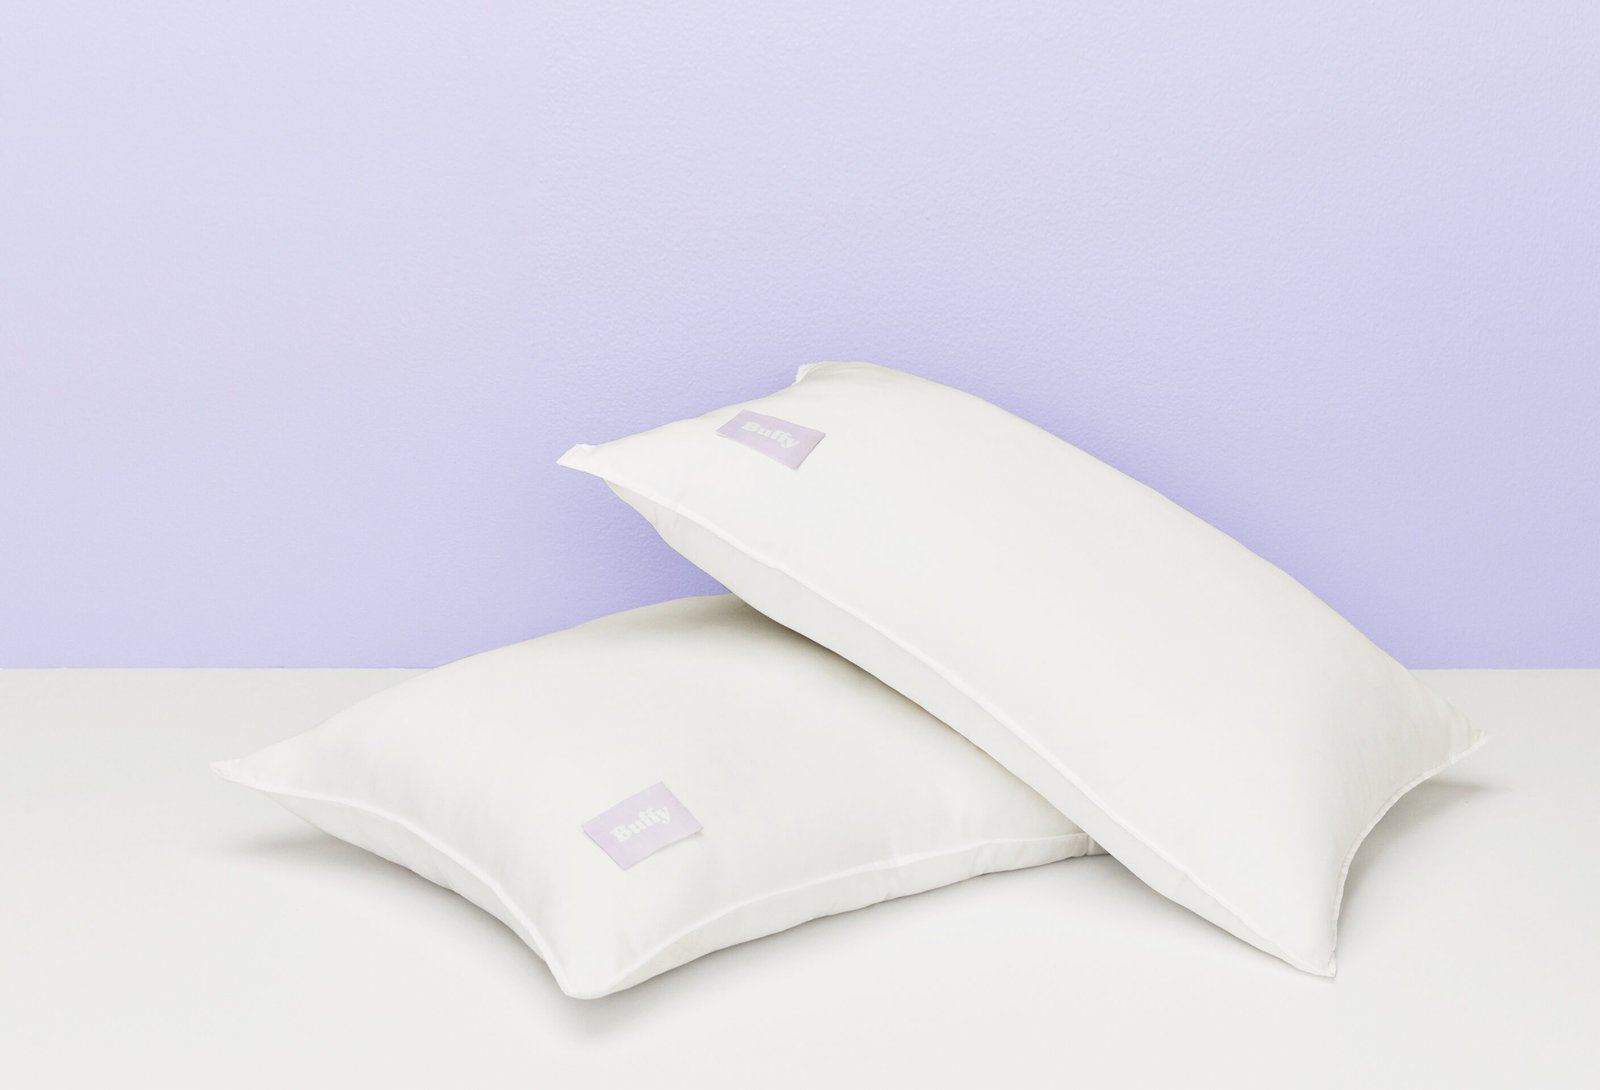 19 Plush Pillows for Every Type of Sleeper